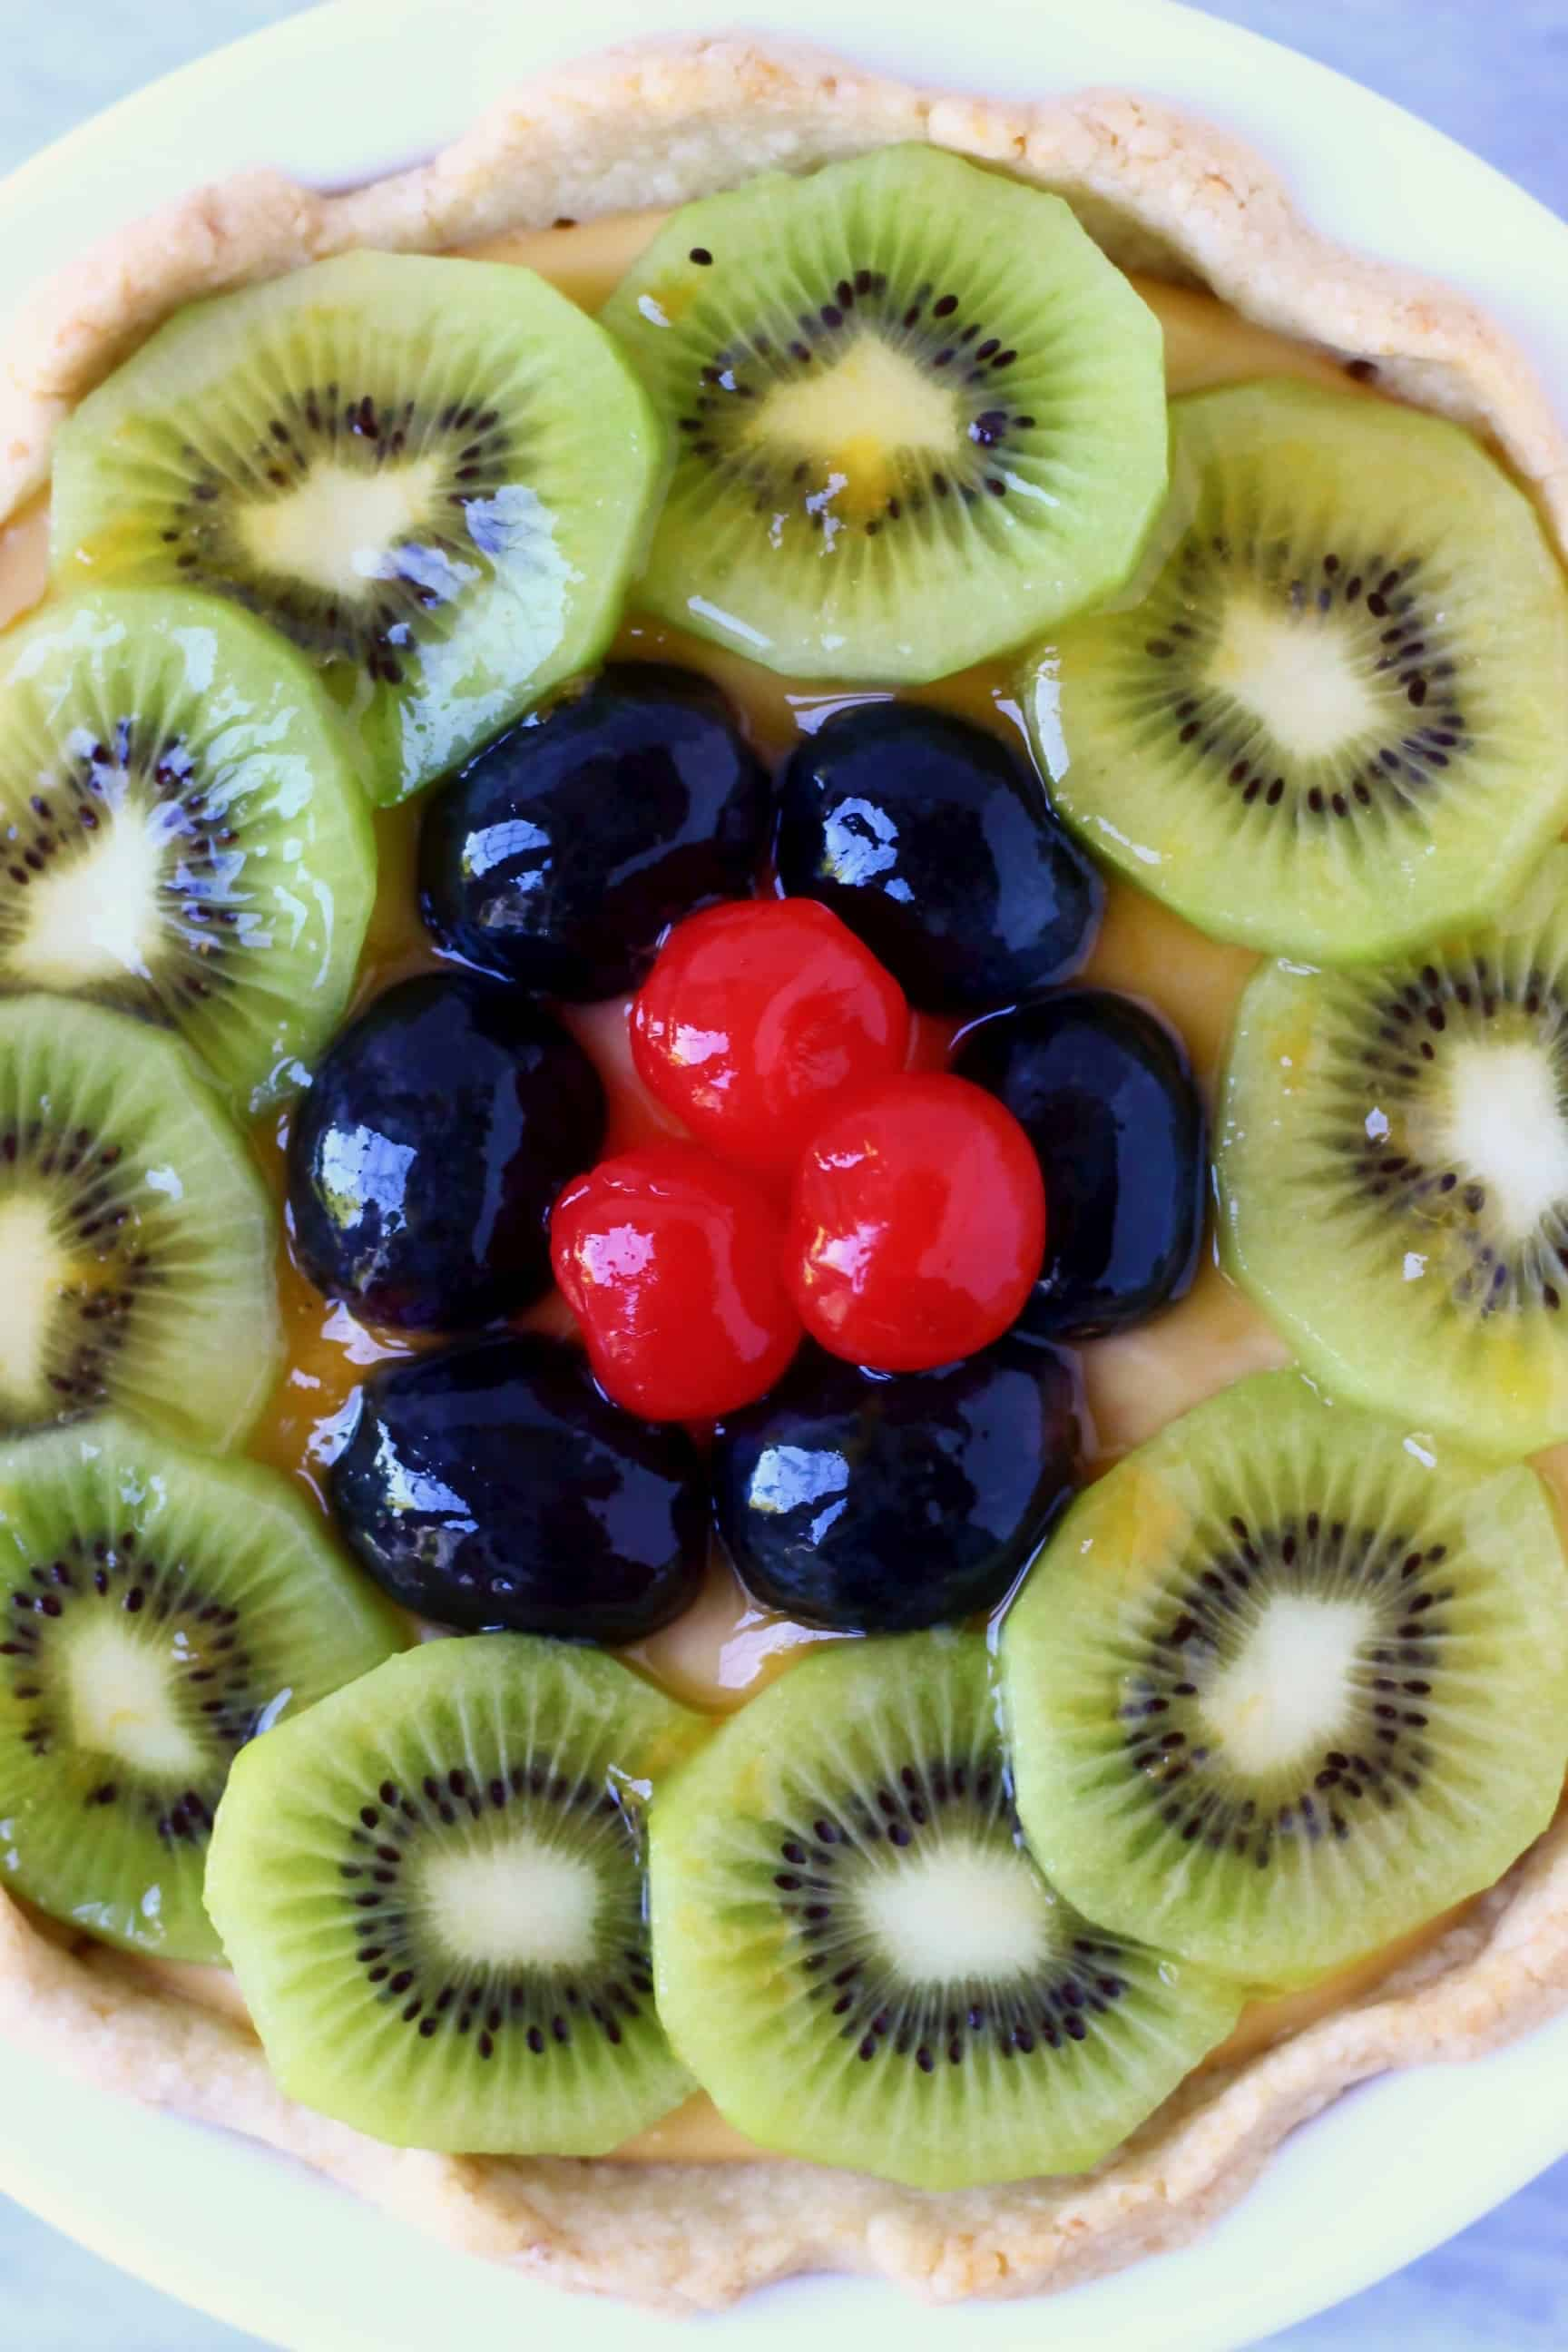 Kiwi slices, black grapes and red cherries on top of a fruit tart in a white pie dish